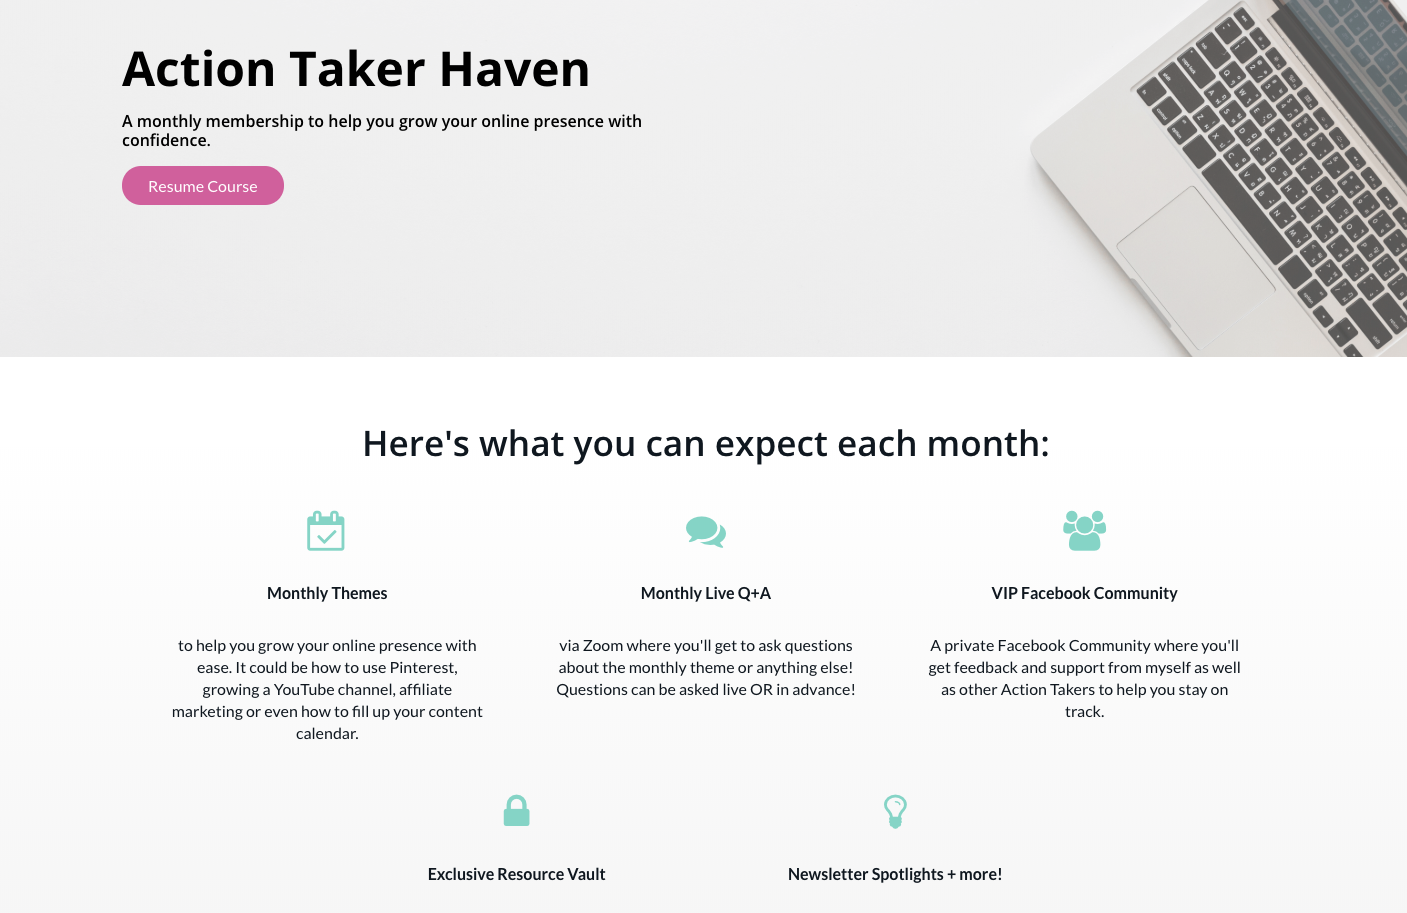 The Action Taker Haven